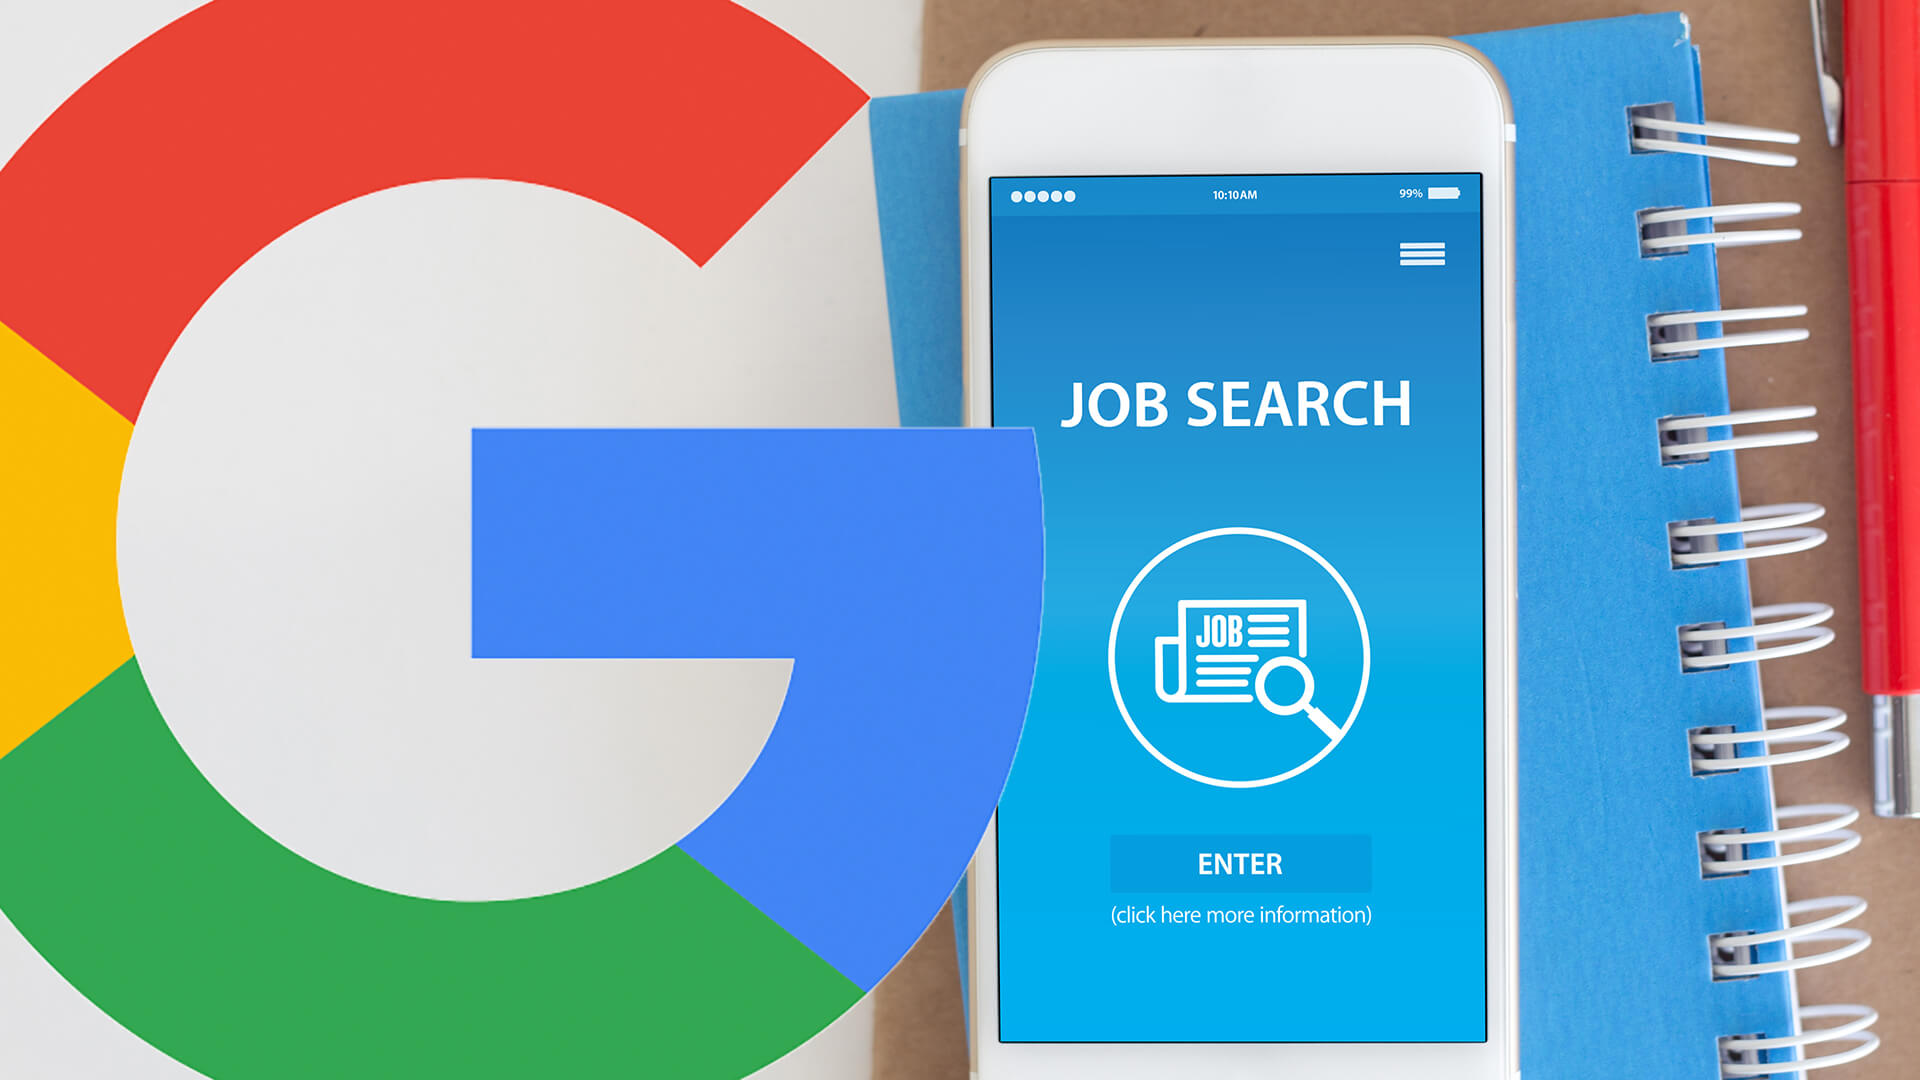 Jobs Работа Google S Job Listings Search Is Now Open To All Job Search Sites